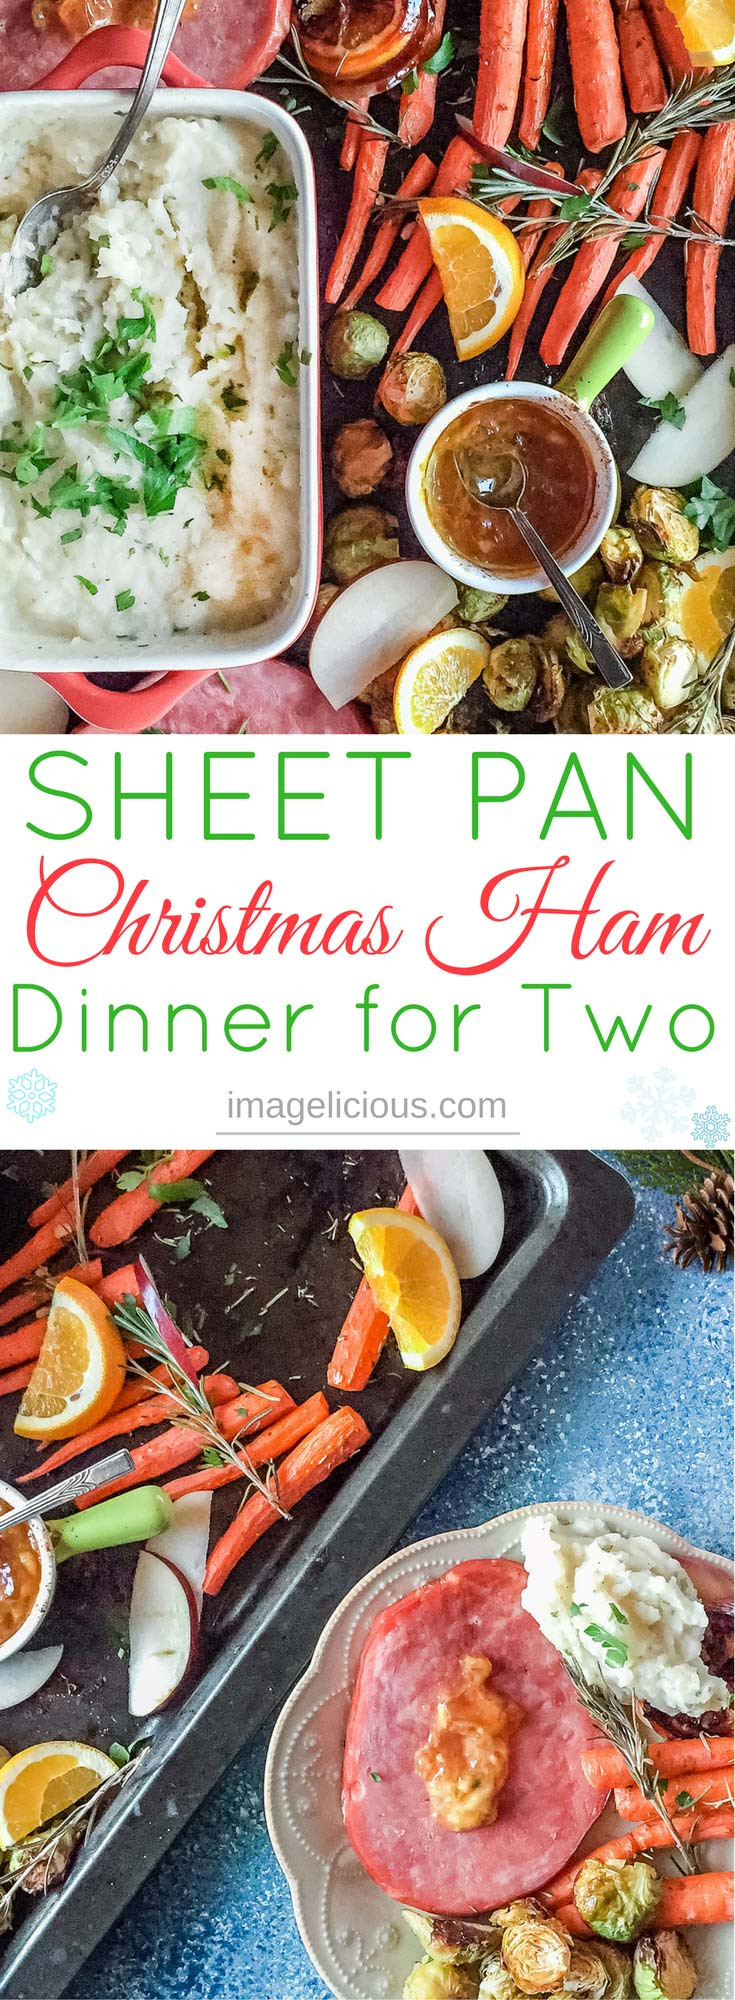 Christmas Dinners For 2  Sheet Pan Christmas Ham Dinner For Two Imagelicious